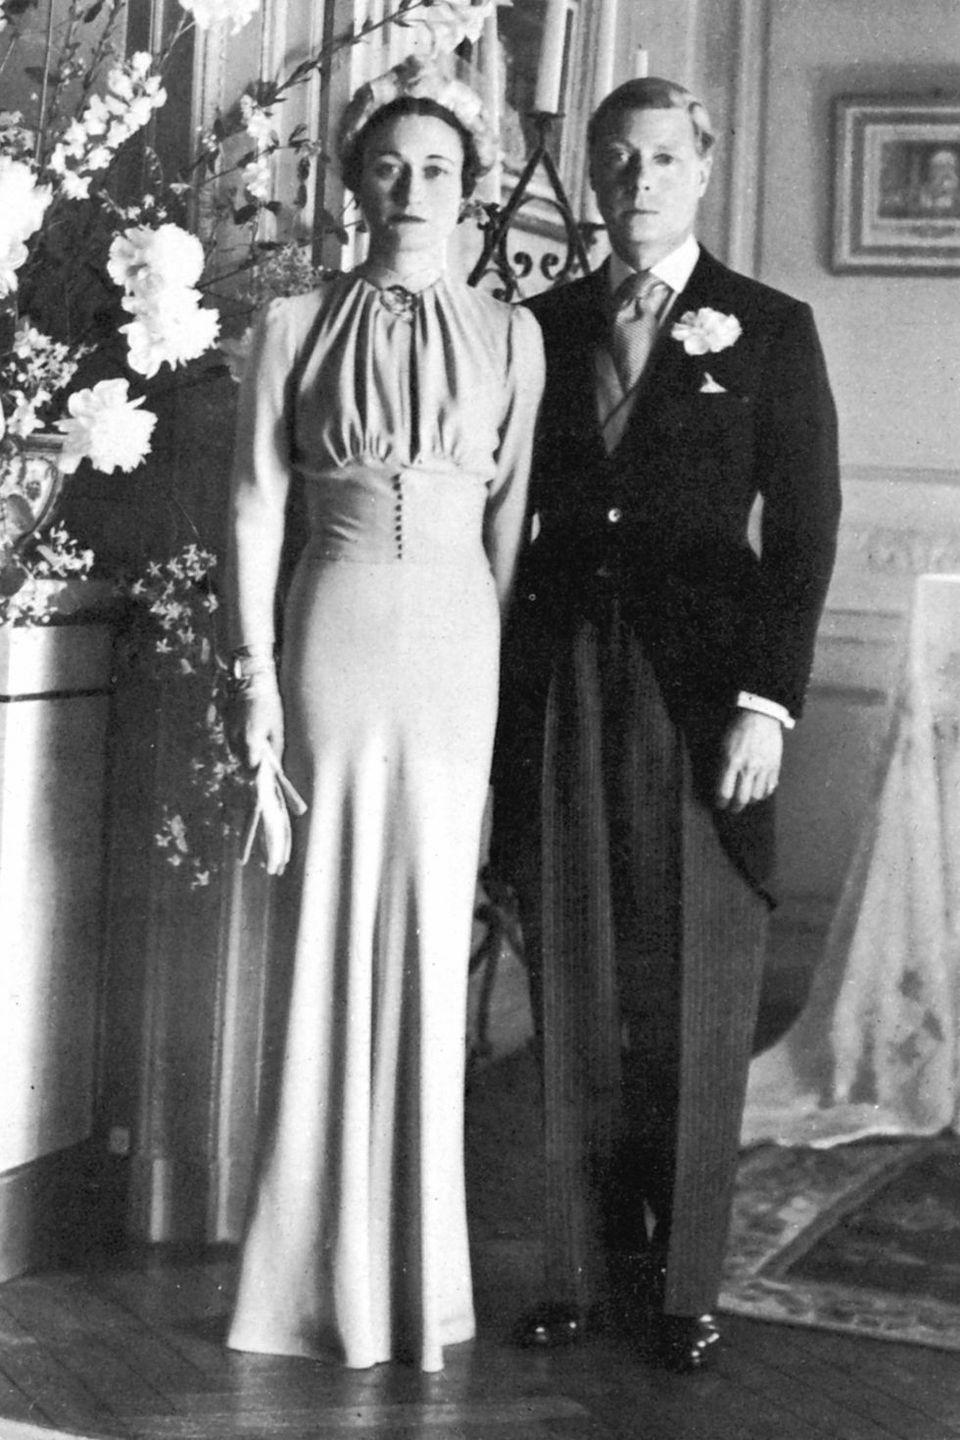 <p>This couple's controversial love affair began in 1931, when the two met under peculiar circumstances. Simpson was friendly with the future King's mistress, Lady Furness, who asked Wallis to chaperone her weekend with Edward at her country estate, Burrough Court. Edward and Lady Furness continued their relationship until 1934, during which he and Wallis continued to bump into one another. </p><p>When Lady Furness was out of town in 1934, Edward and Wallis got together. Due to her common status, Edward abdicated the throne to marry Wallis in 1936, although she was still married to her second husband at the time.</p>